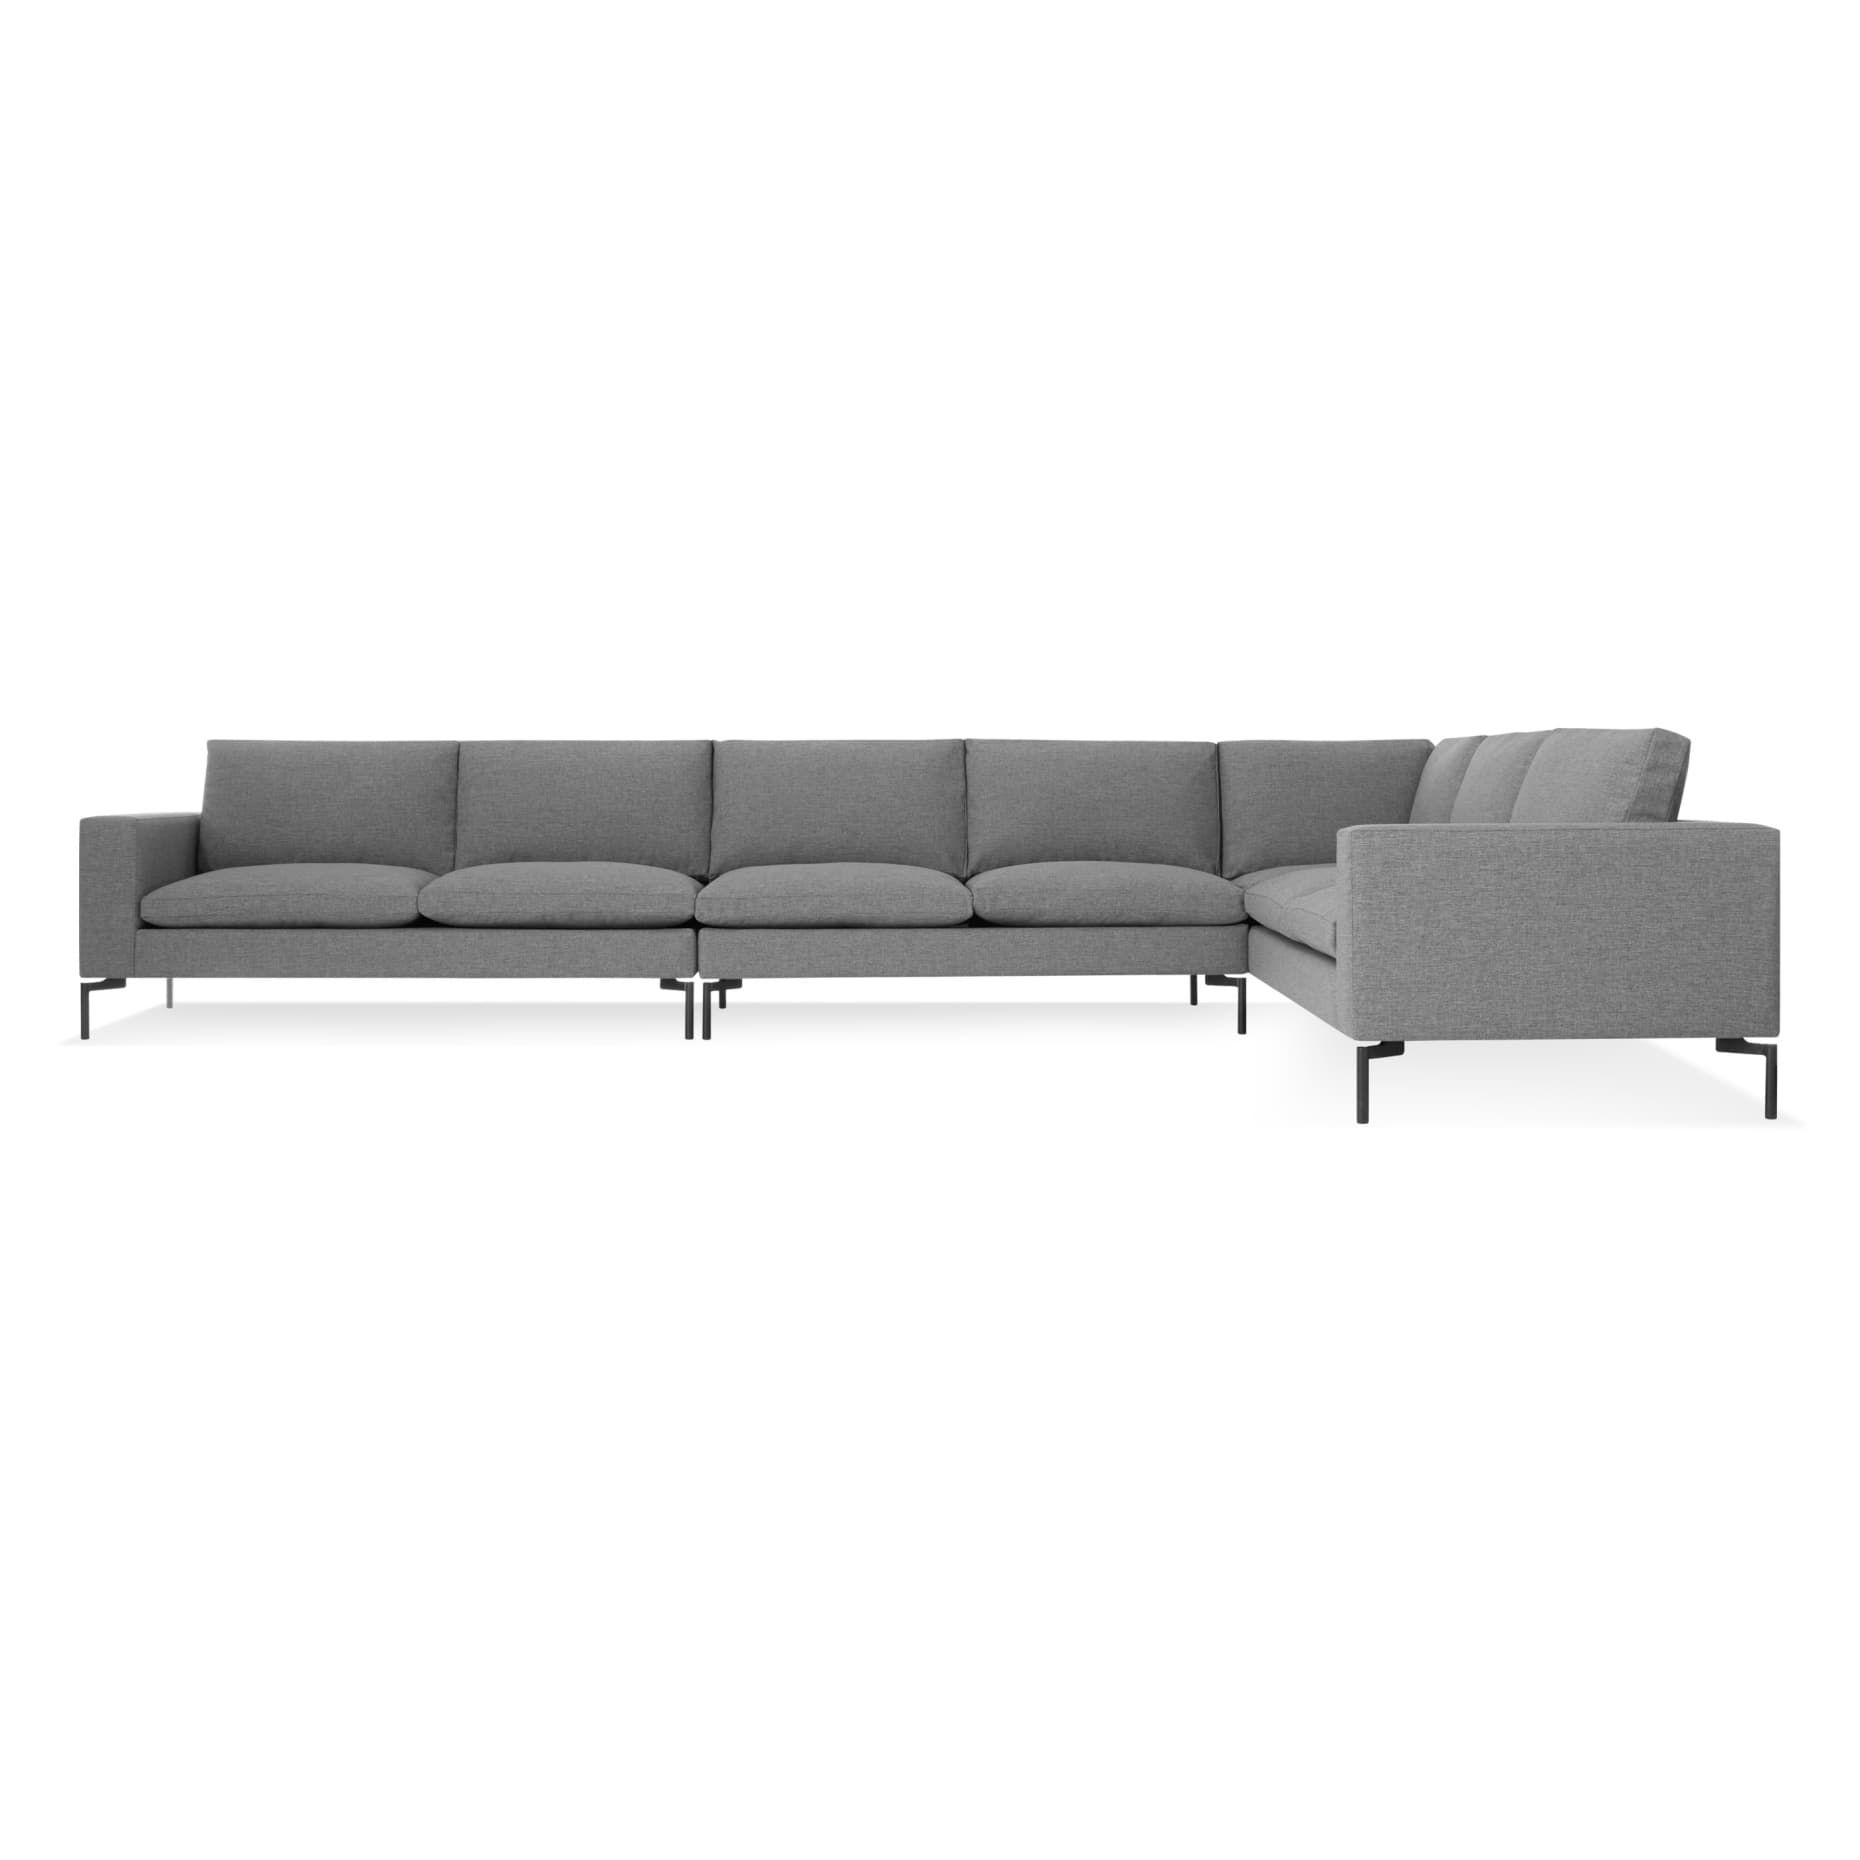 New Standard Sectional Sofa Large Modern Sofa Sectional Sectional Large Sectional Sofa